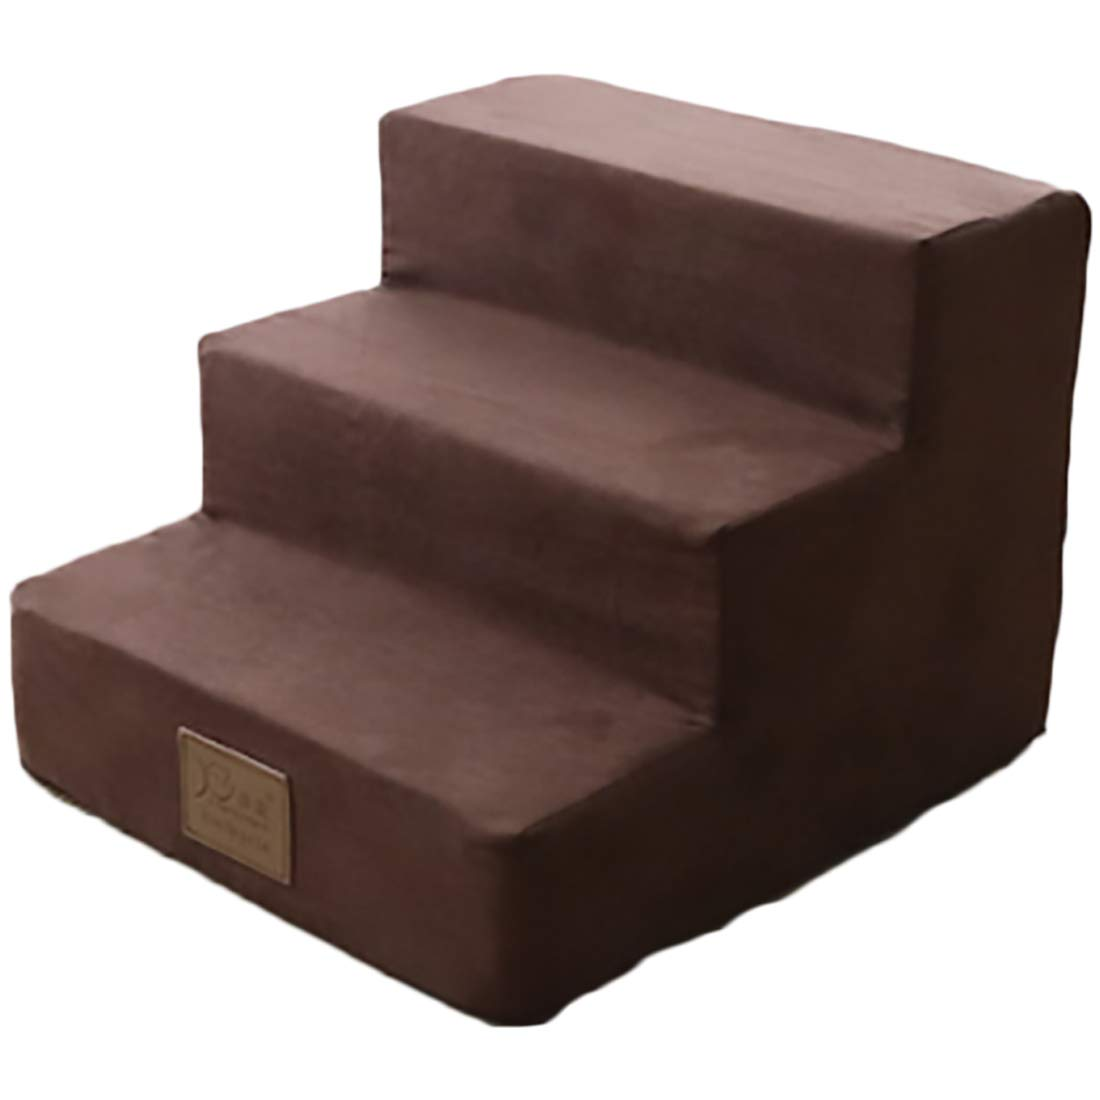 Dog Steps for High Bed Pet Stairs Dog Stairs Going Up to The Climb Ladder Dog Mat Sponge Mats Suede Family Favorite Brown